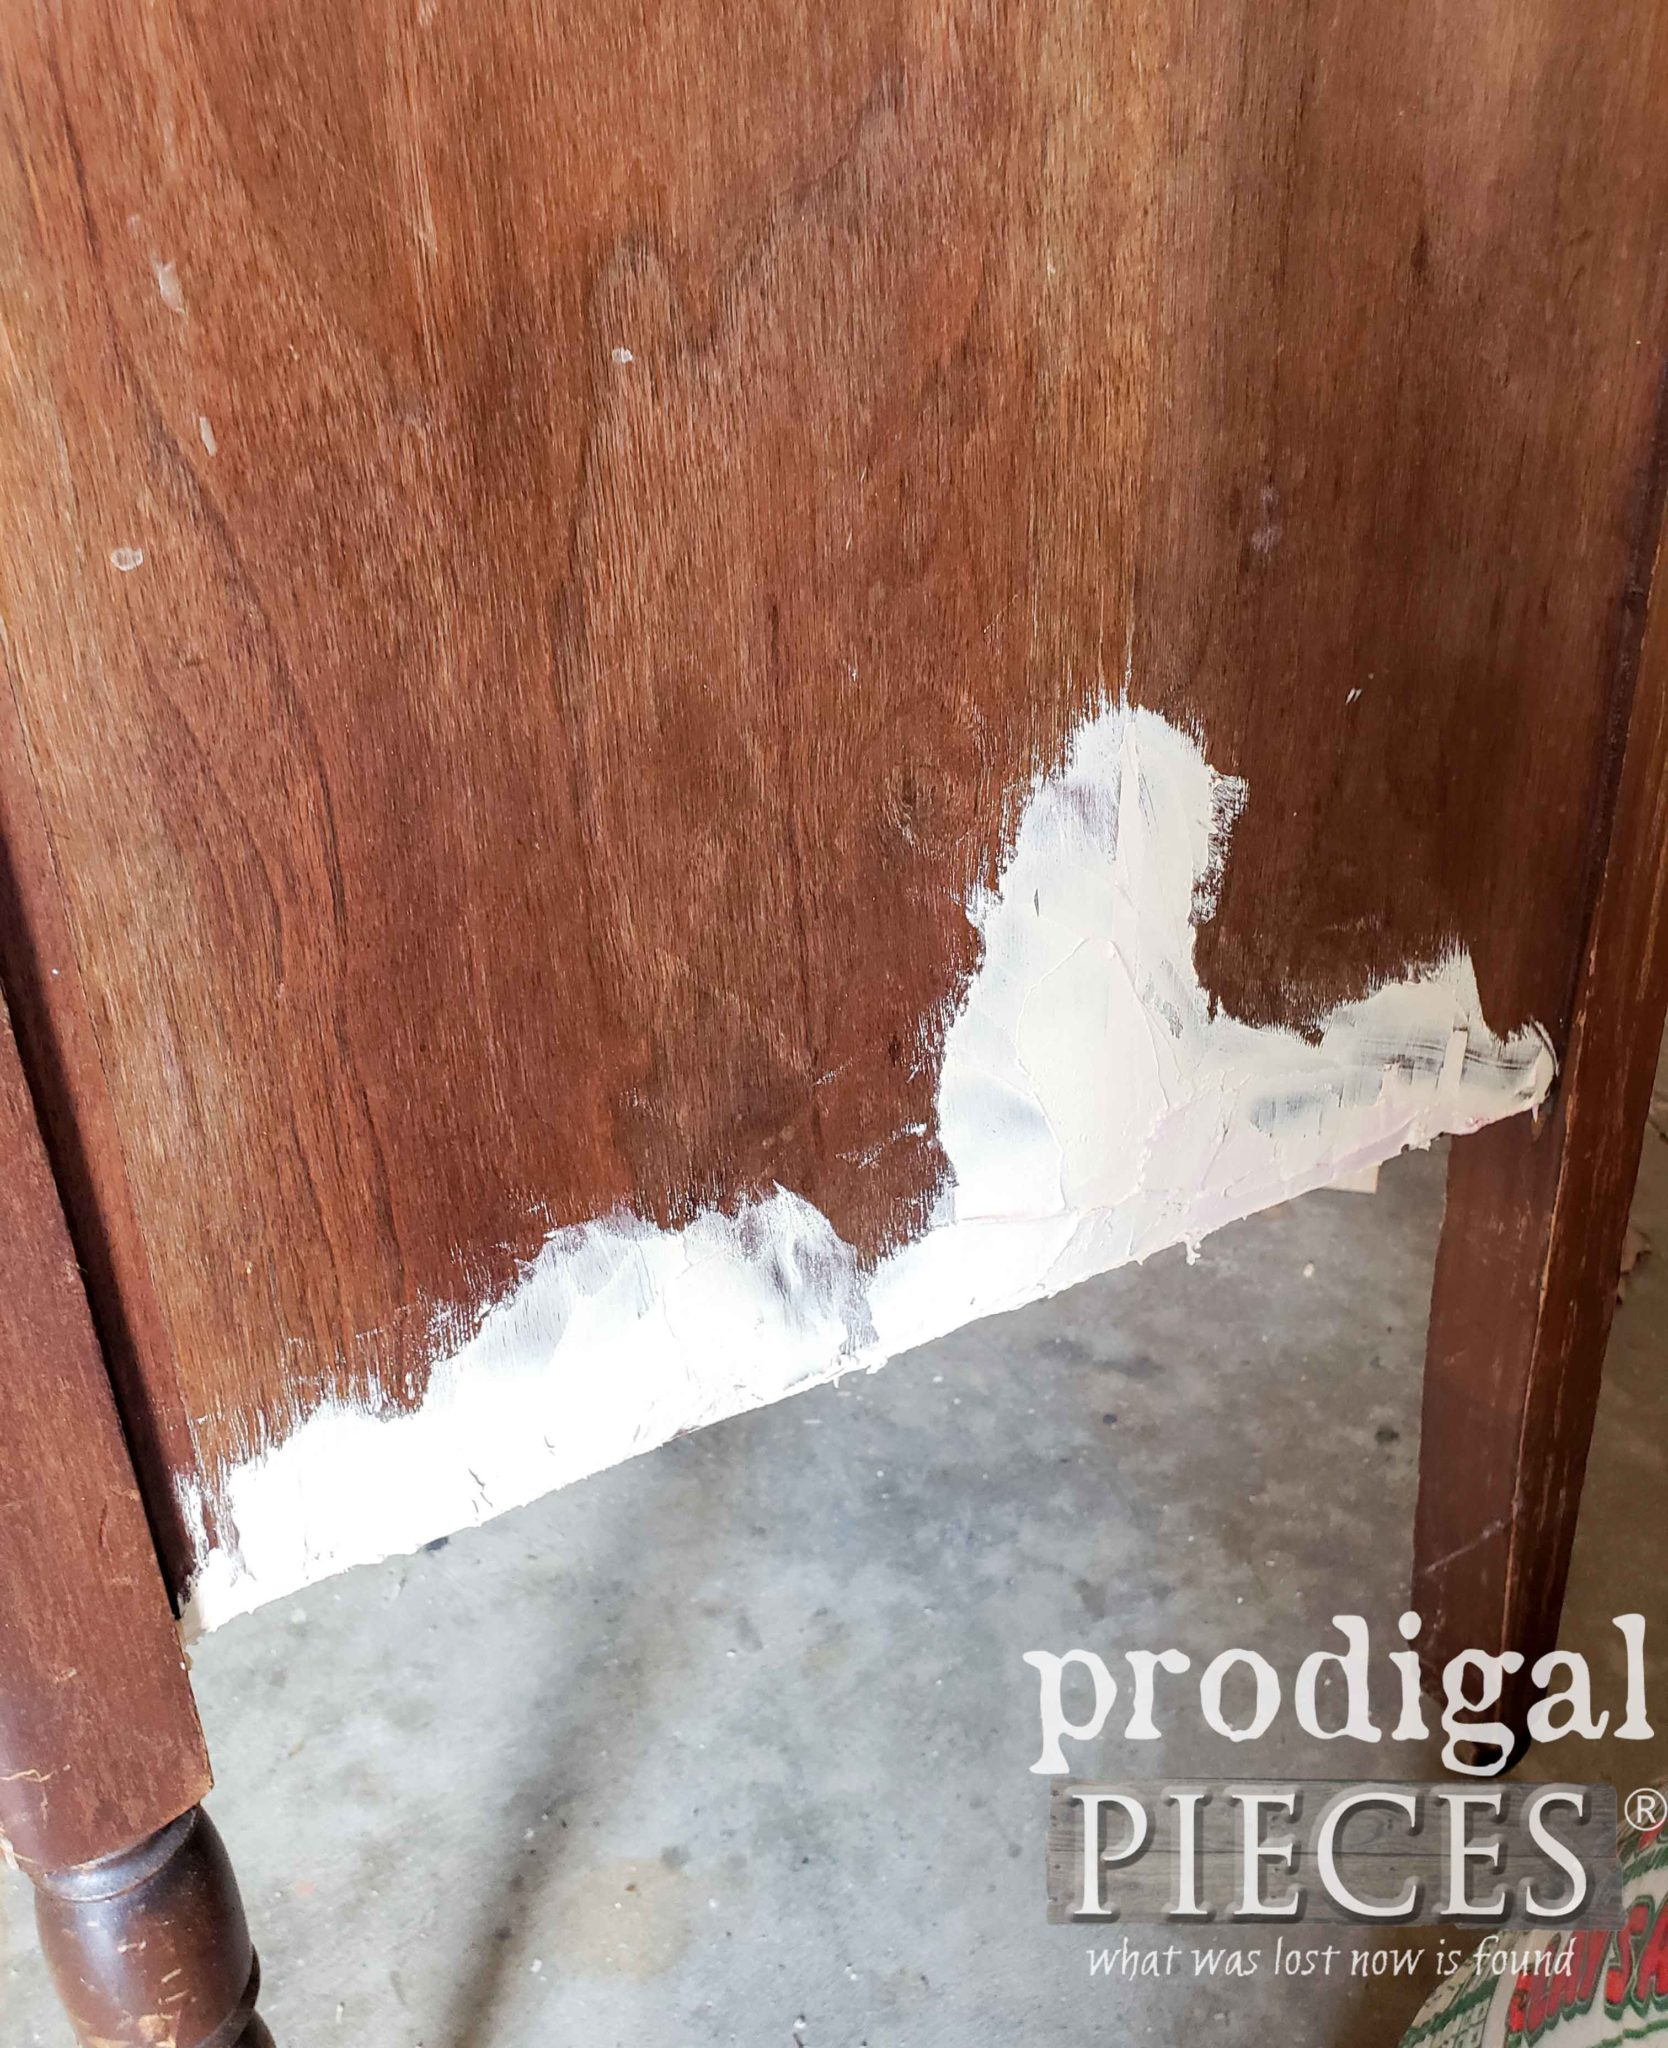 Repair Damaged Veneer with Wood Filler | prodigalpieces.com #prodigalpieces